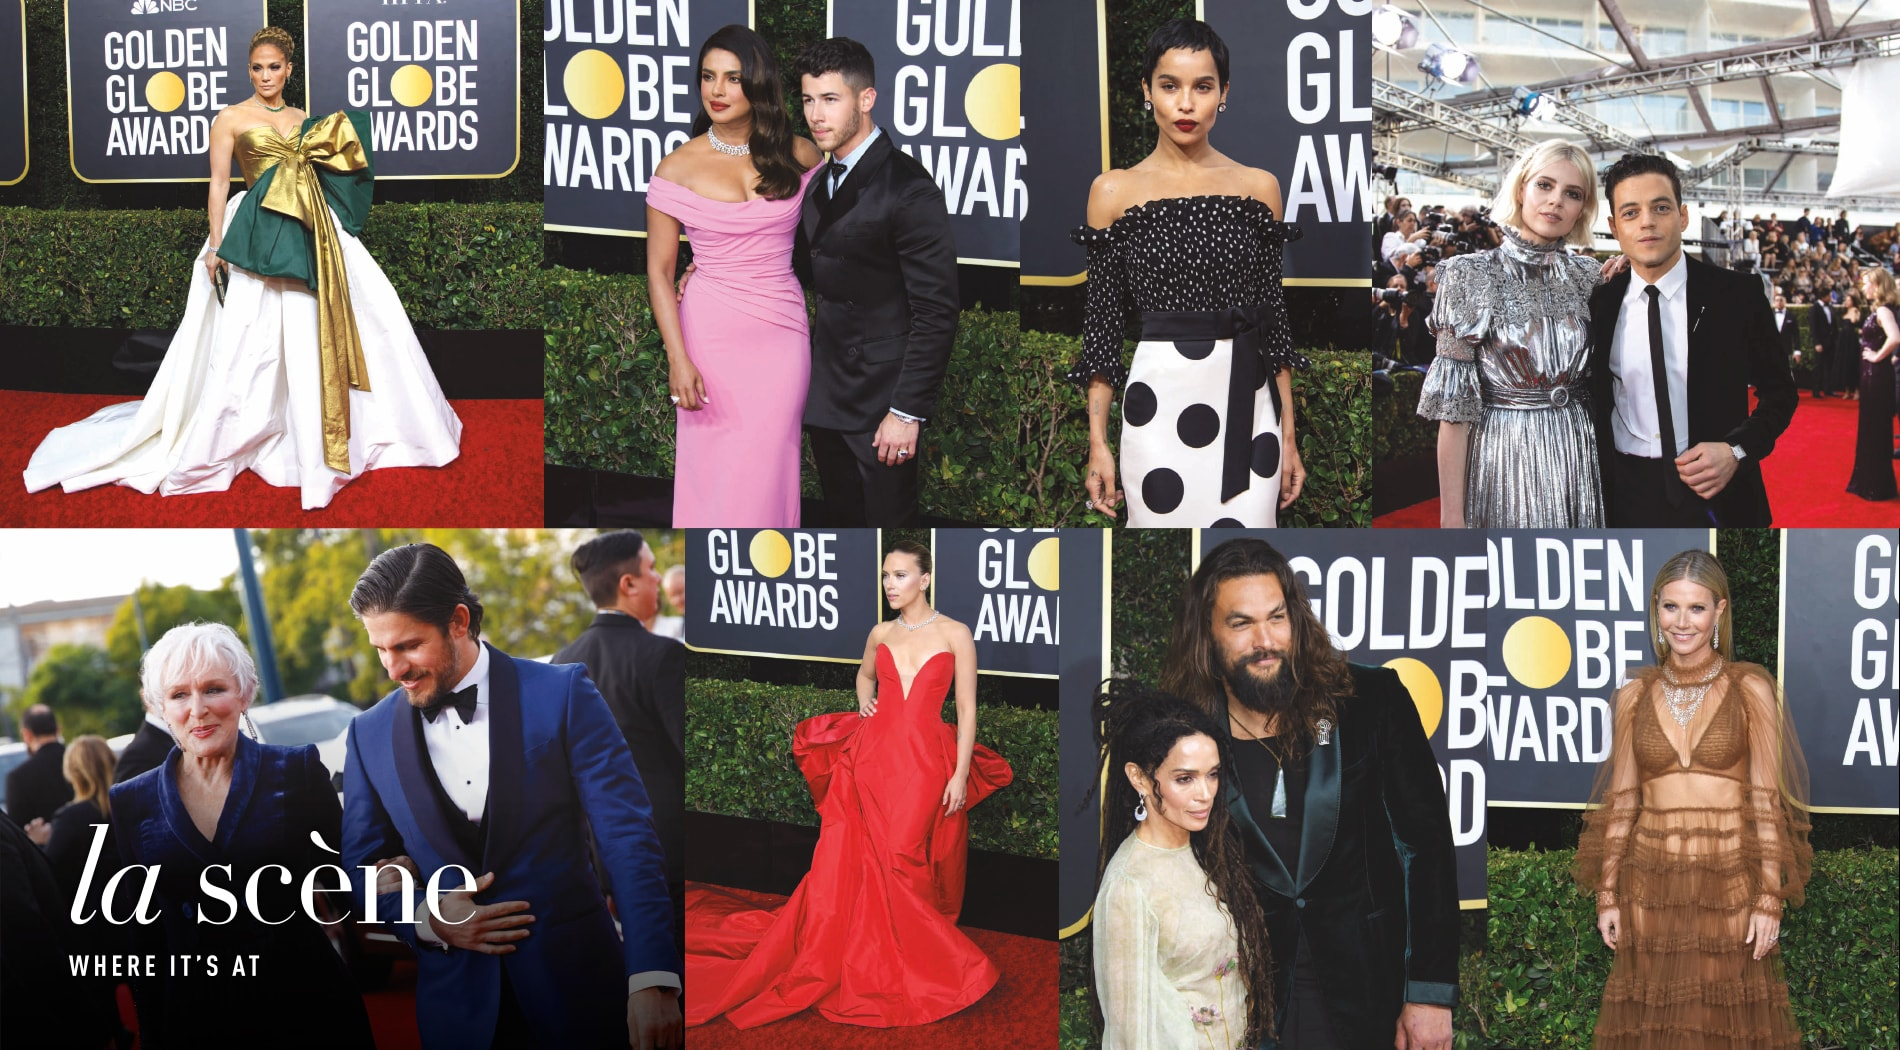 The Beverly Hilton, Golden Globe Awards, 77th Annual Golden Globe Awards